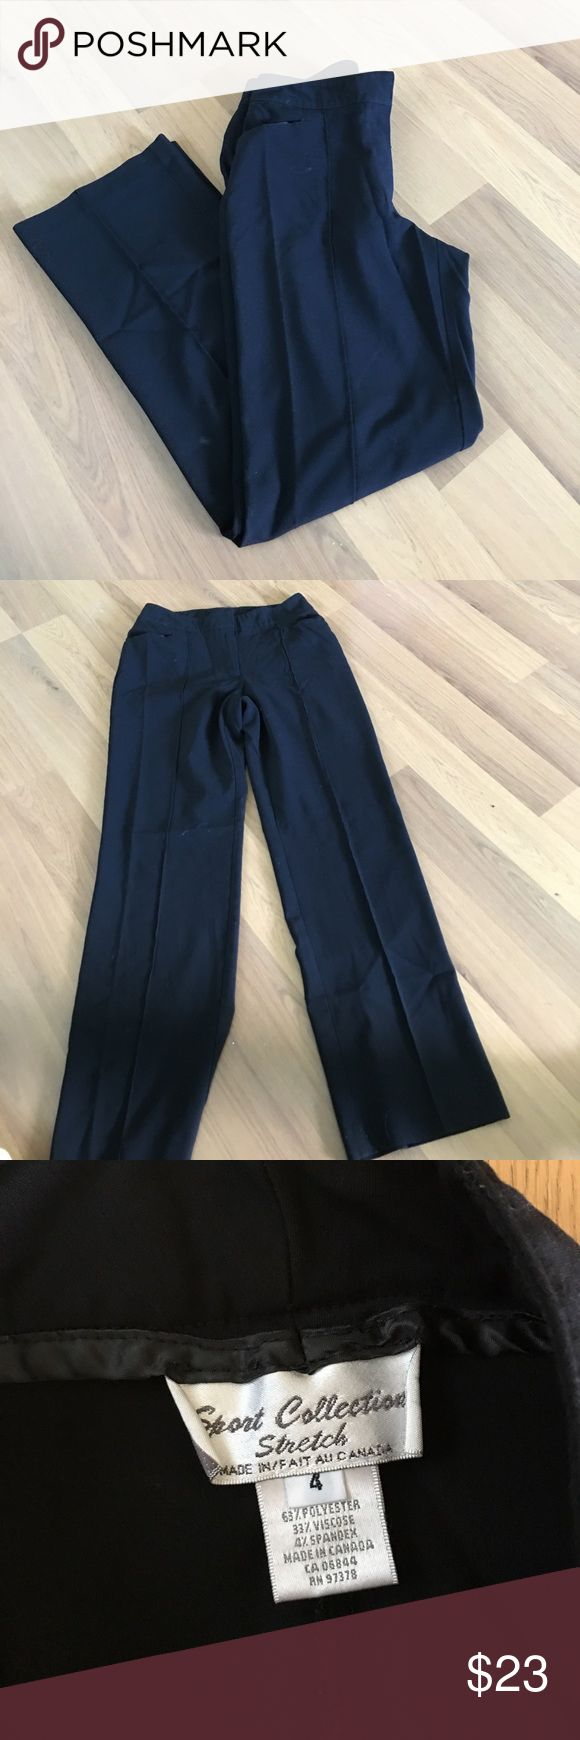 Sport collection stretch dress pants New condition. Size 4. sport collection Pants Straight Leg